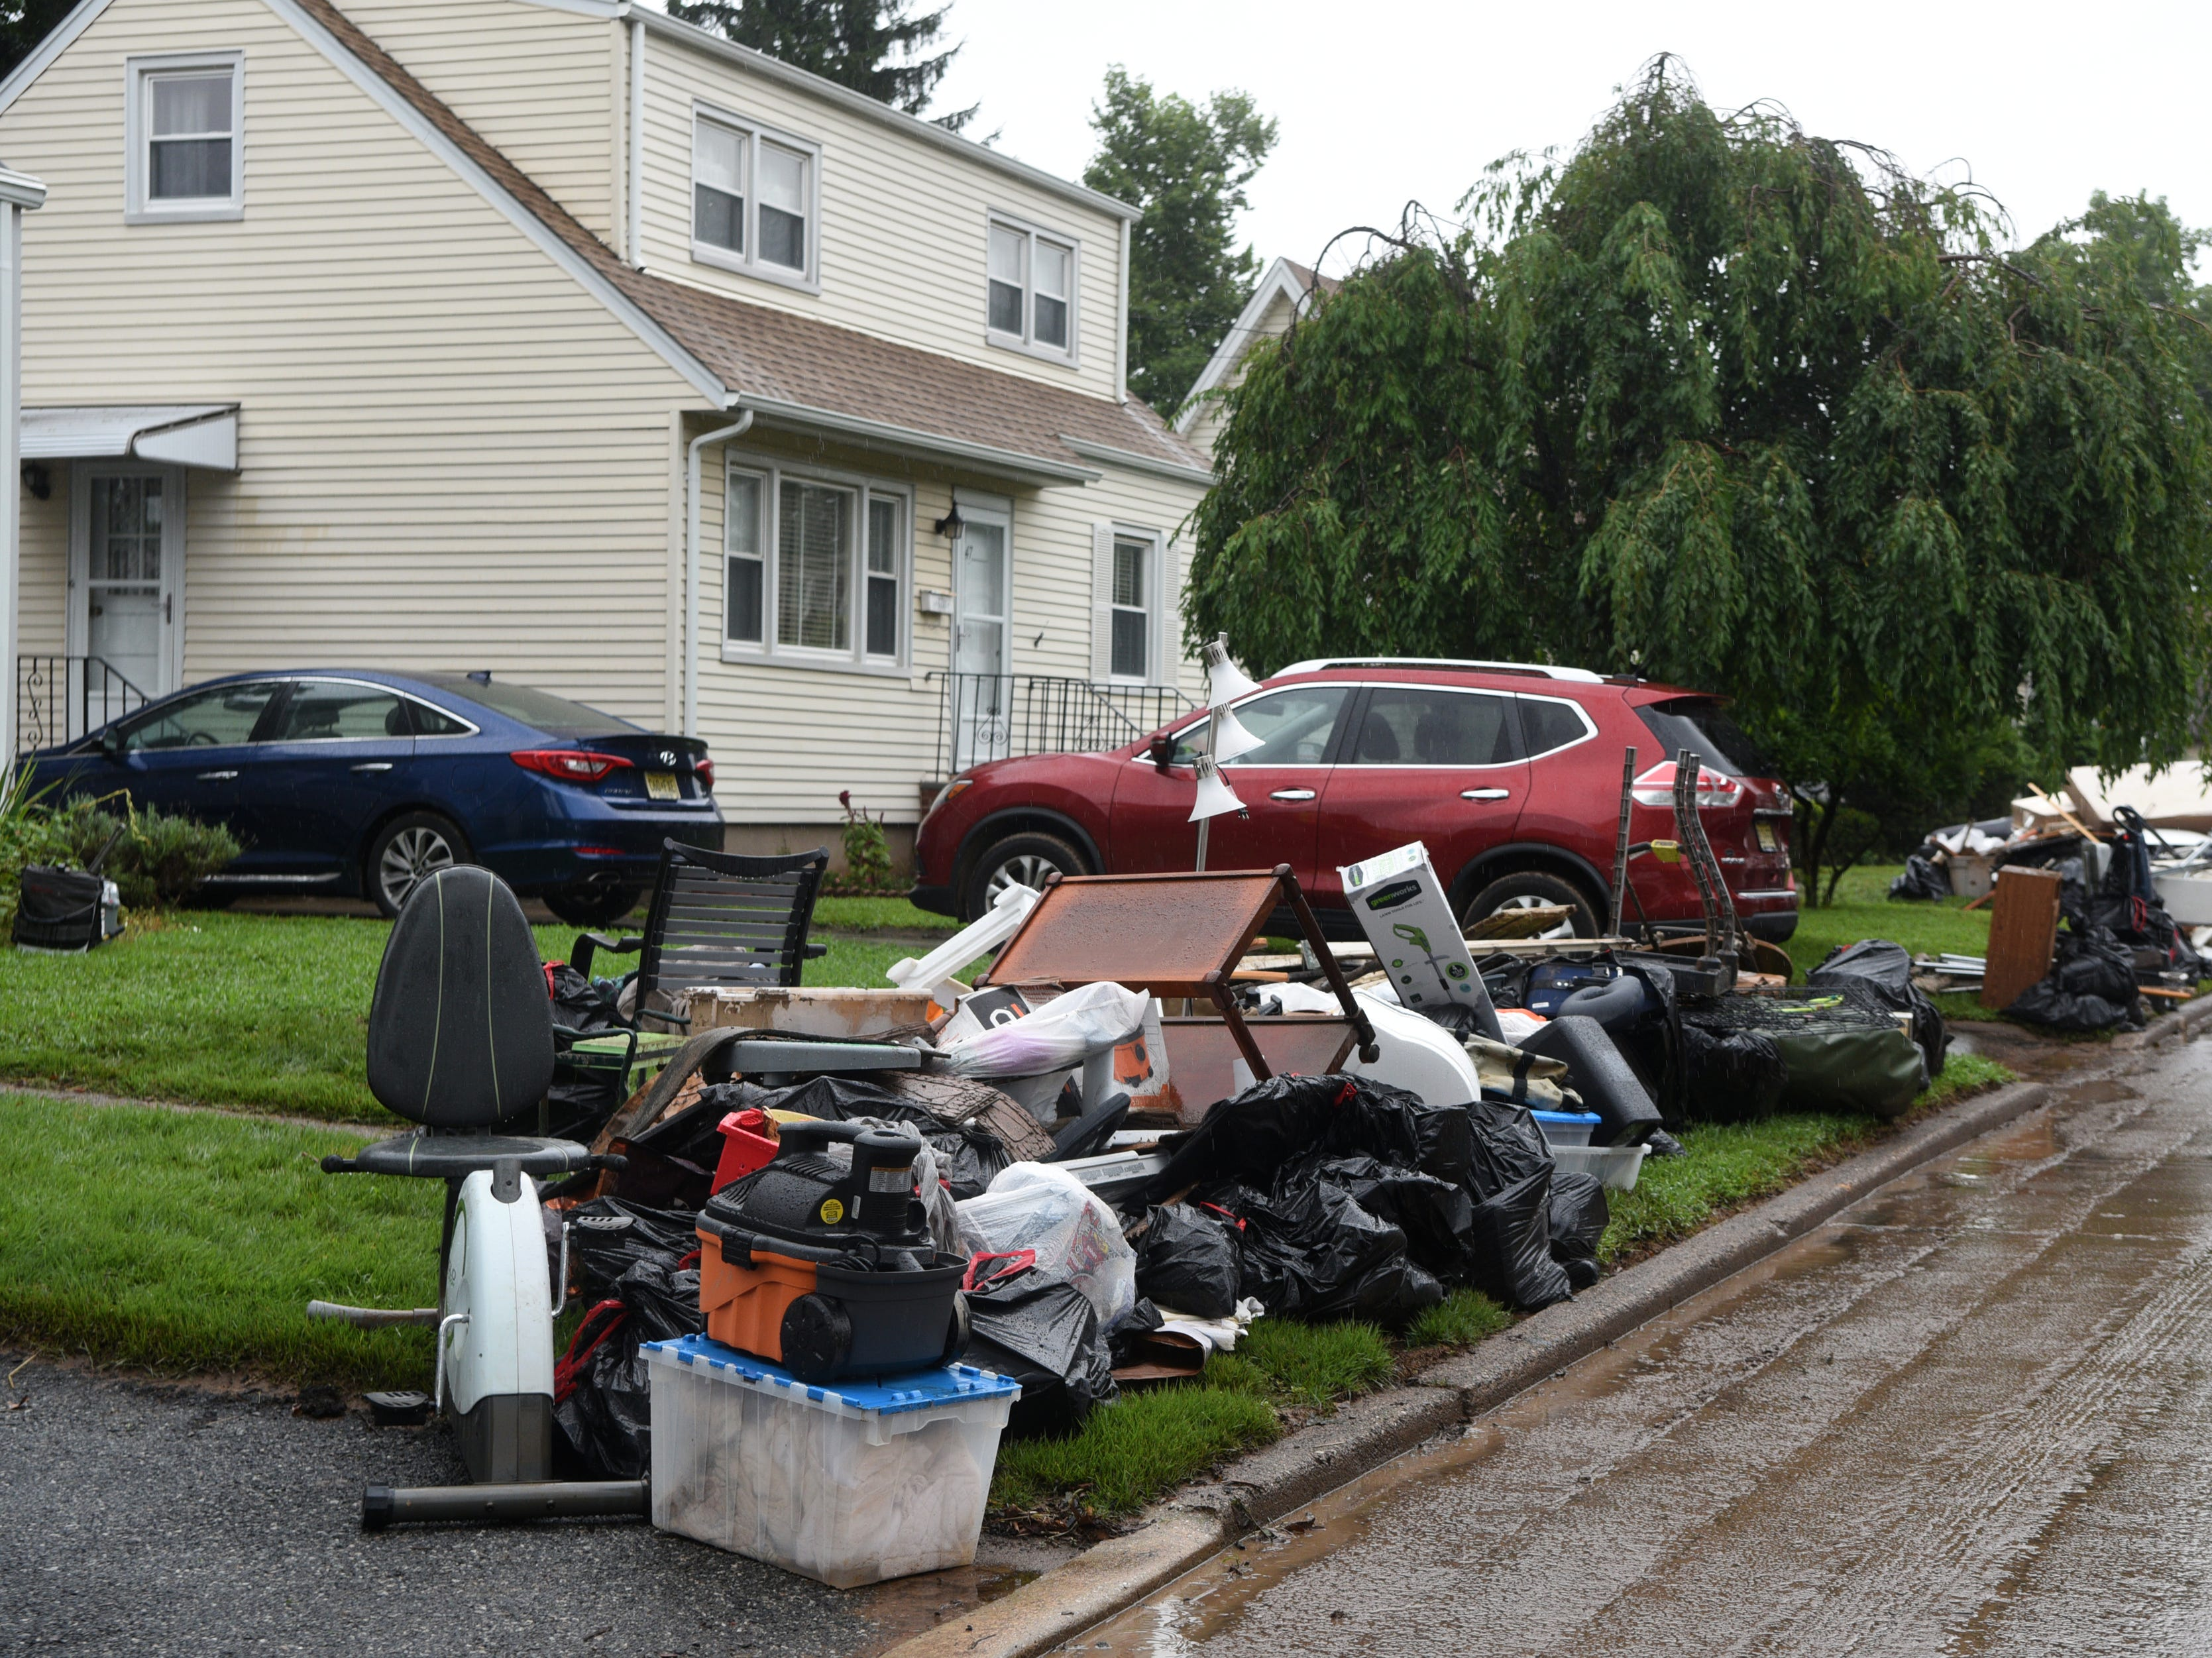 Items ruined in the flood removed from homes on Ryle Ave. in Little Falls sit on the street on Monday, August 13, 2018. Flooding in the neighborhood near the Peckman River on Saturday is being called the worst since Hurricane Floyd.